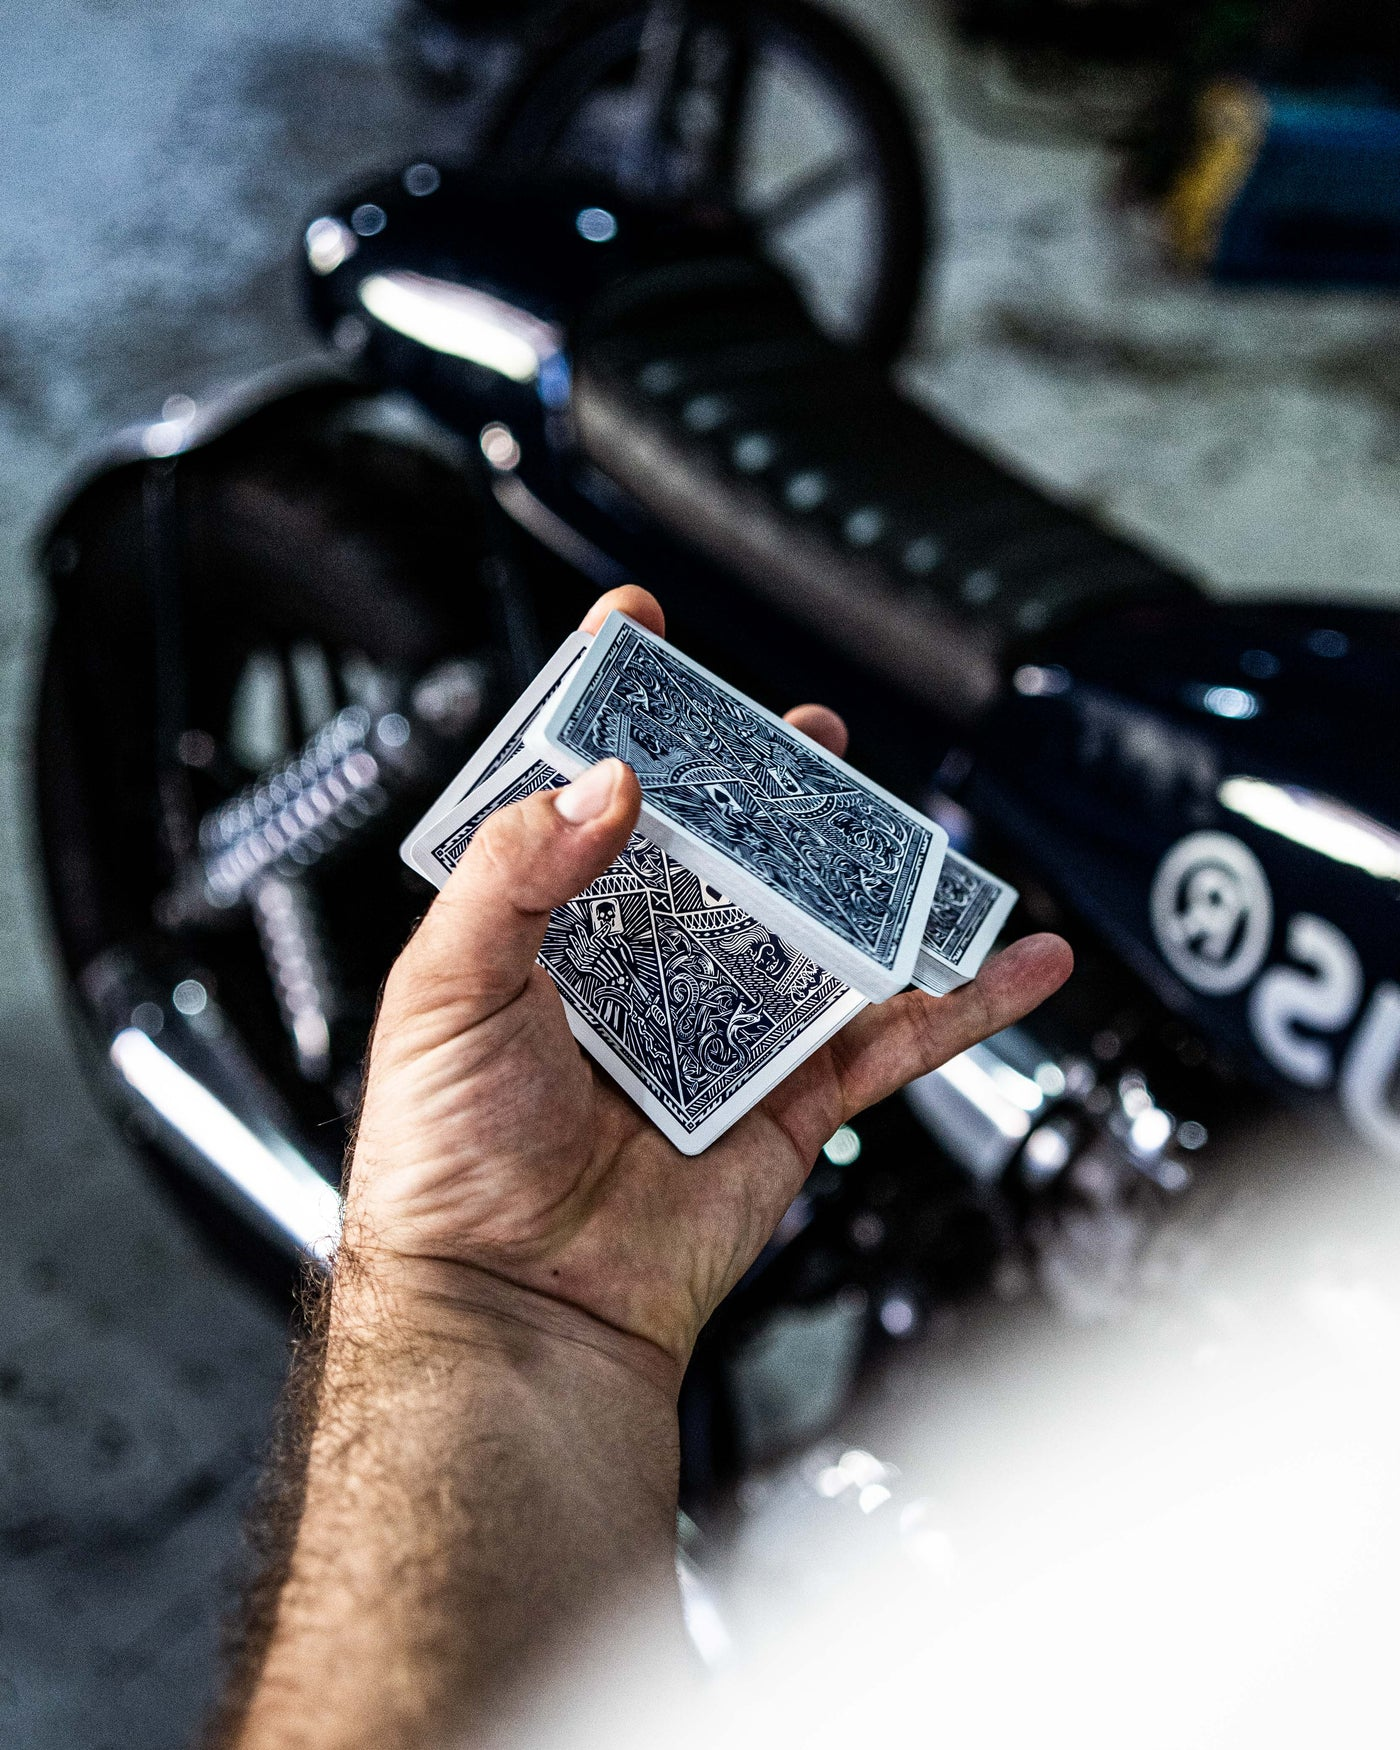 Playing cards held in a hand while performing one handed cut cardistry move in front of a custom motorcycle from Deus Ex Machina